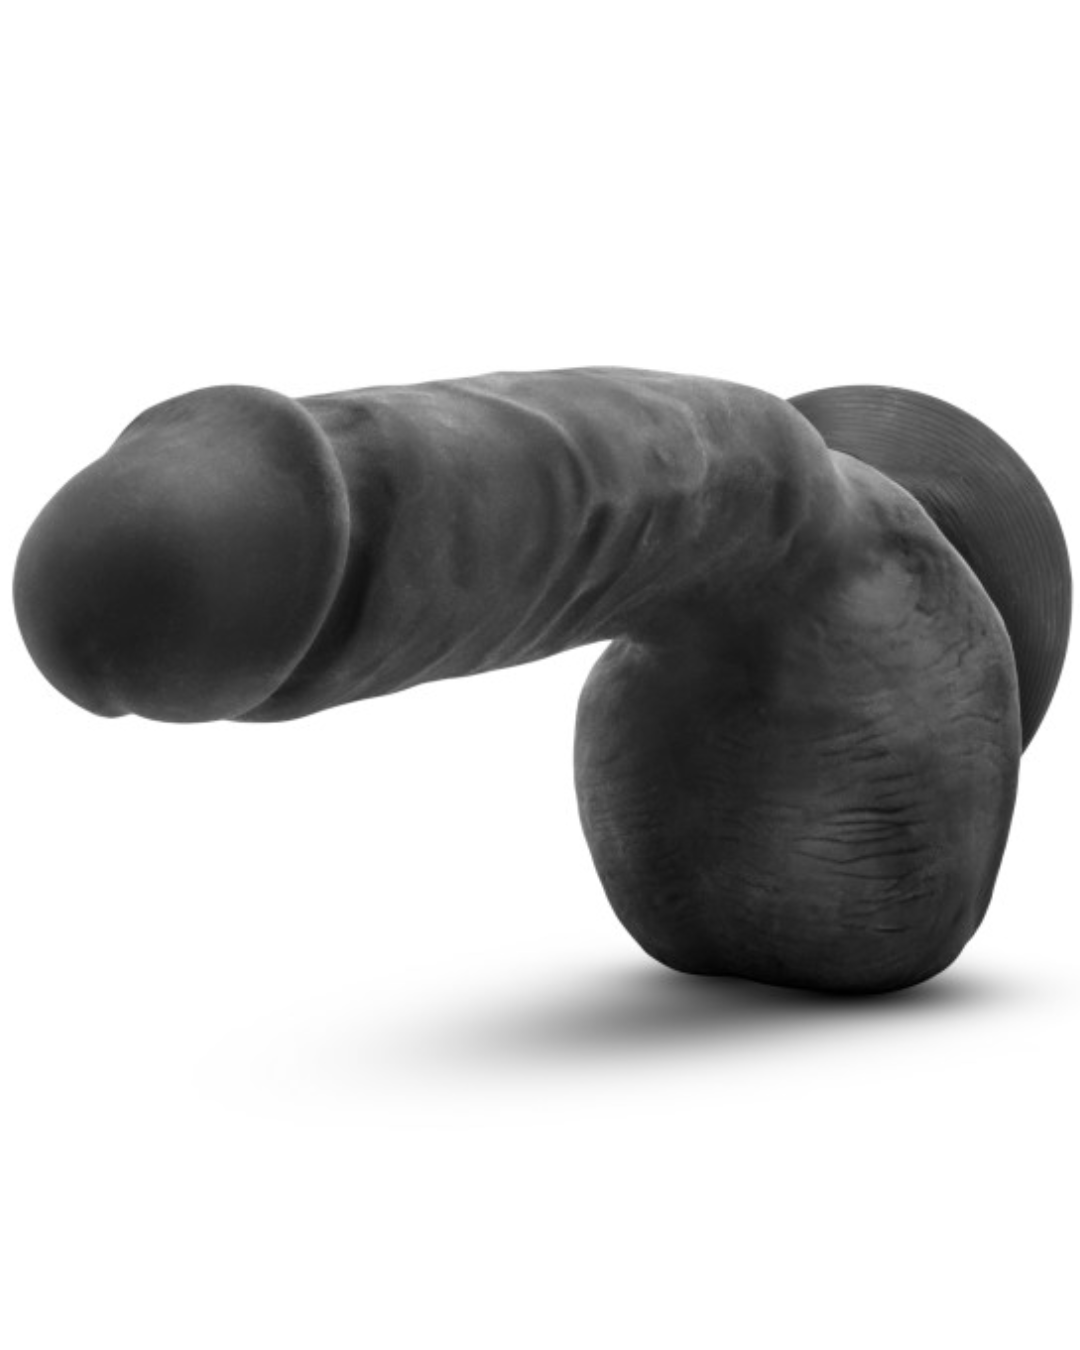 Au Naturel Bold Pound 8.5 Inch Sensa Feel Suction Cup Dildo by Blush - Black horizontal view of the tip